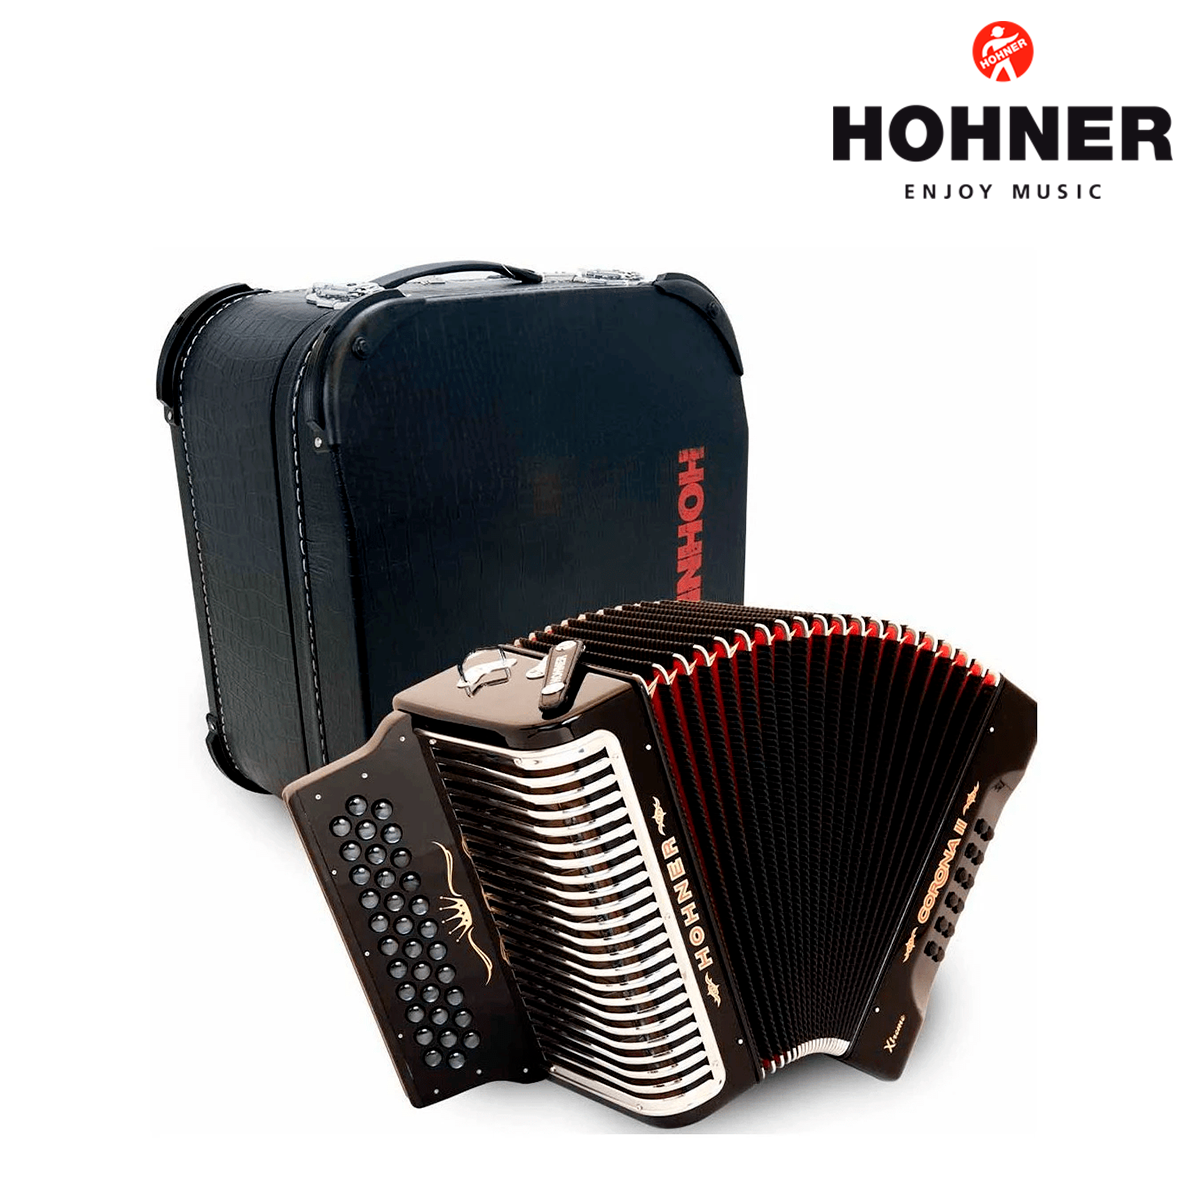 ACORDEON DIATONICO HOHNER